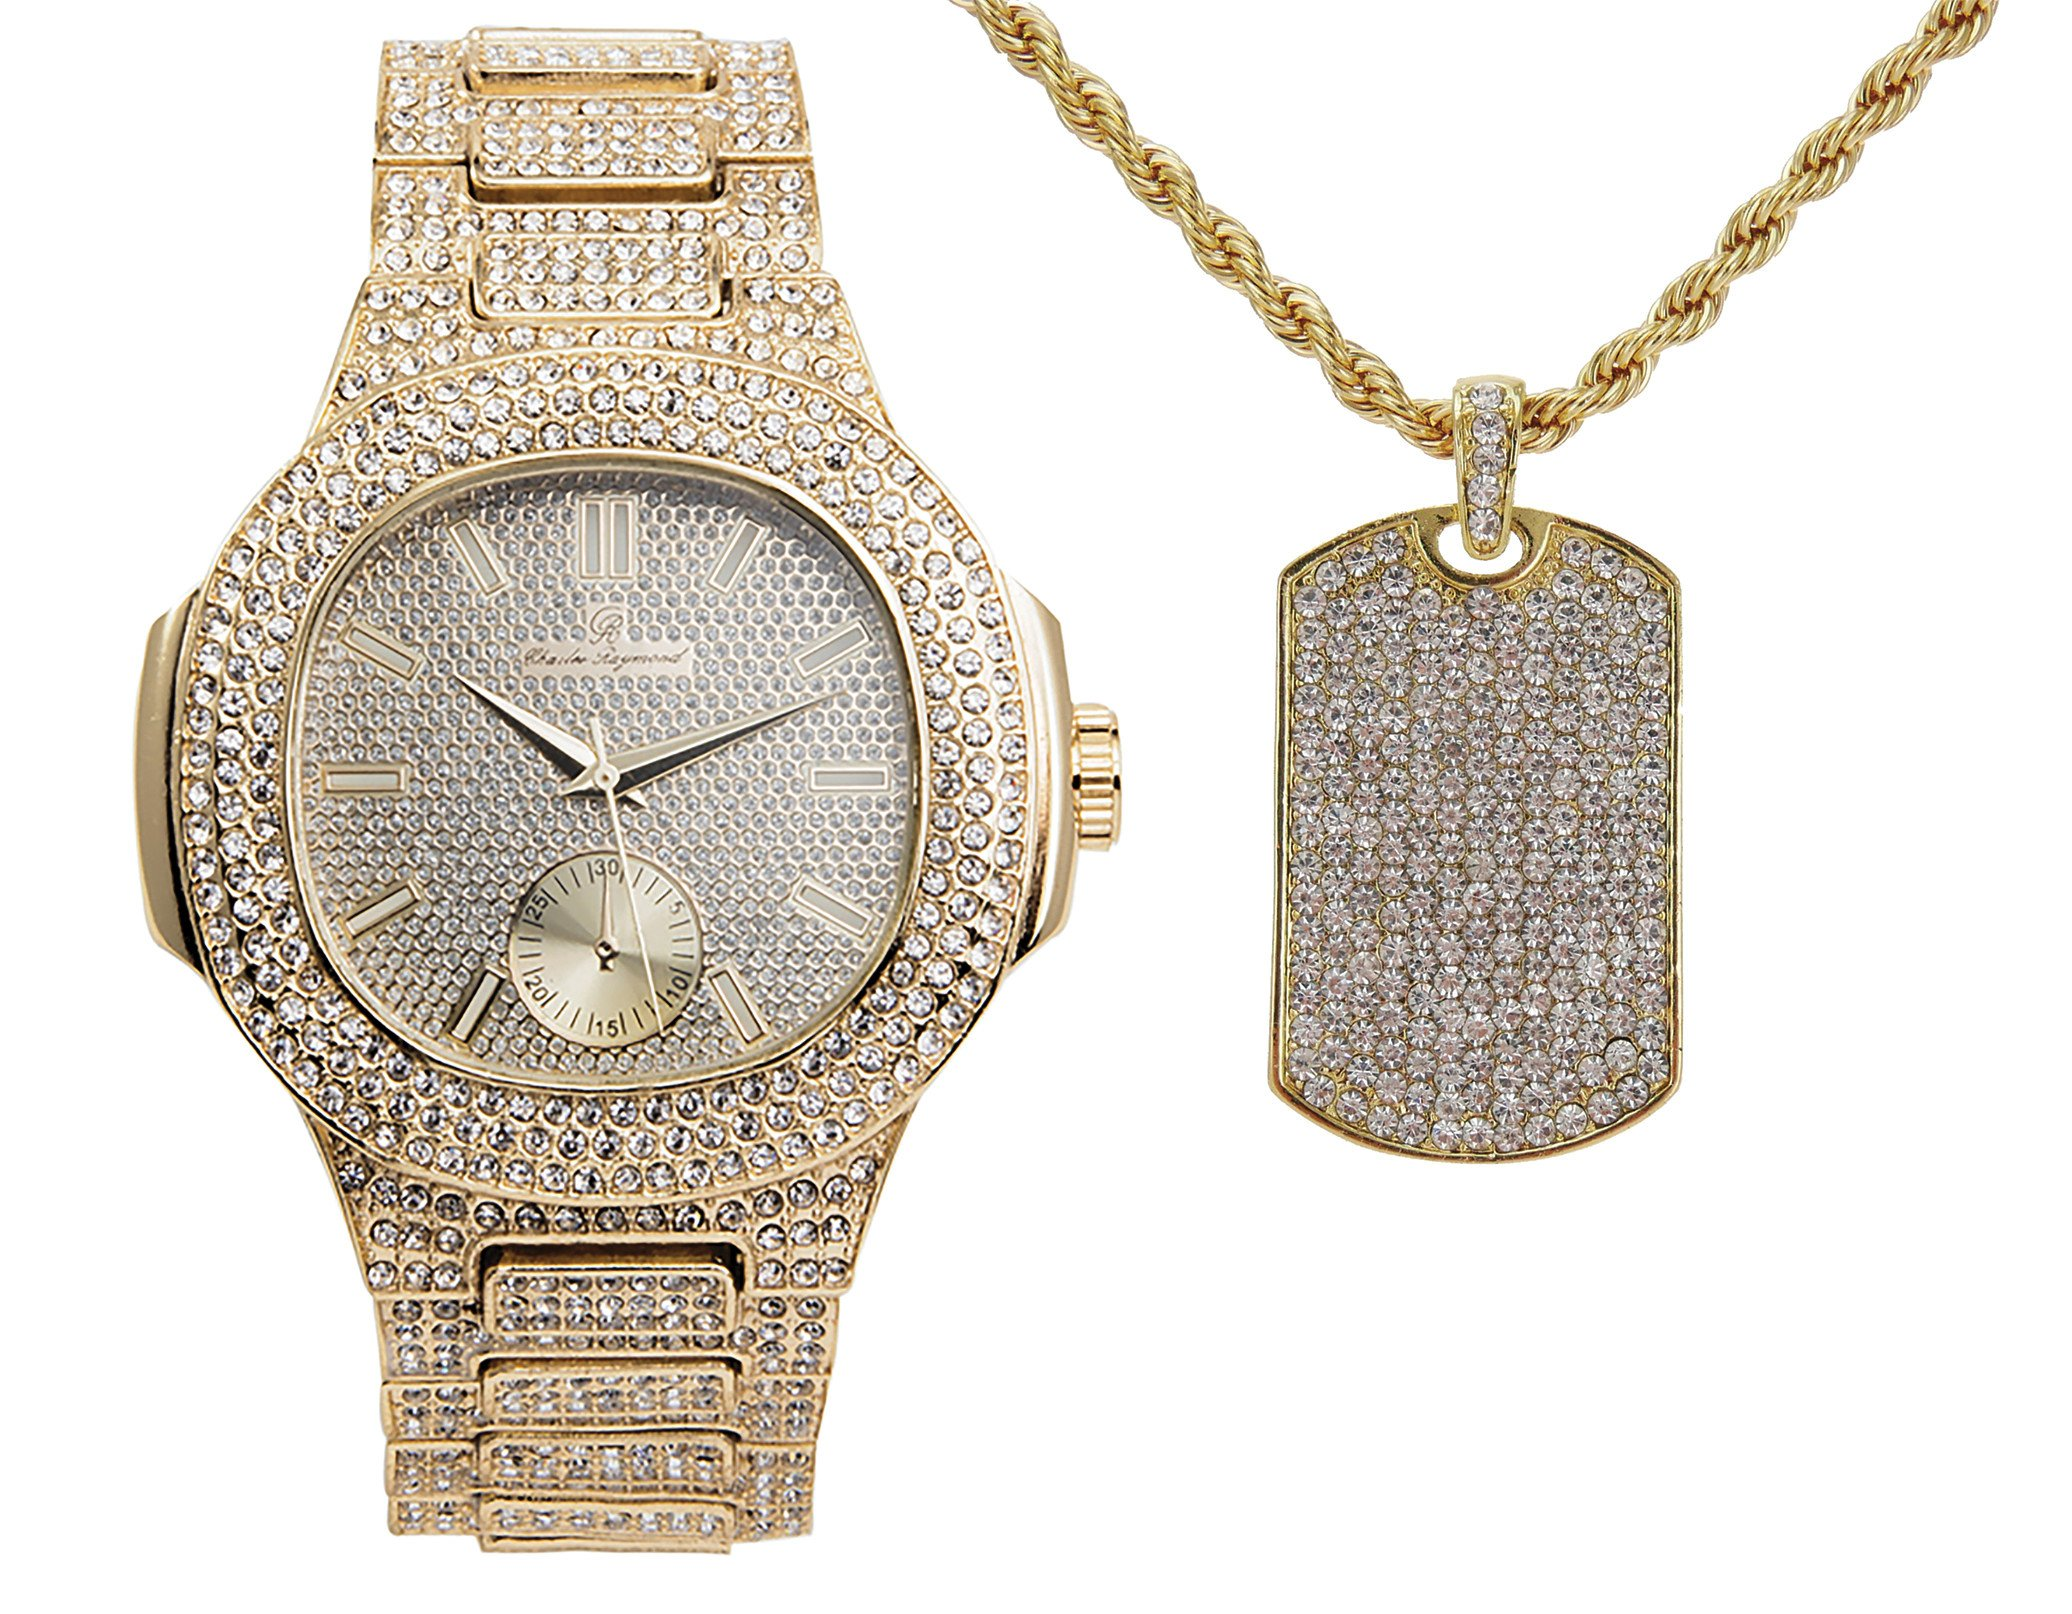 Hip Hop Ice'd Out Dog Tag Charm Necklace with Bling Mens Watch fit for a King!! 8475-SSS47Gold